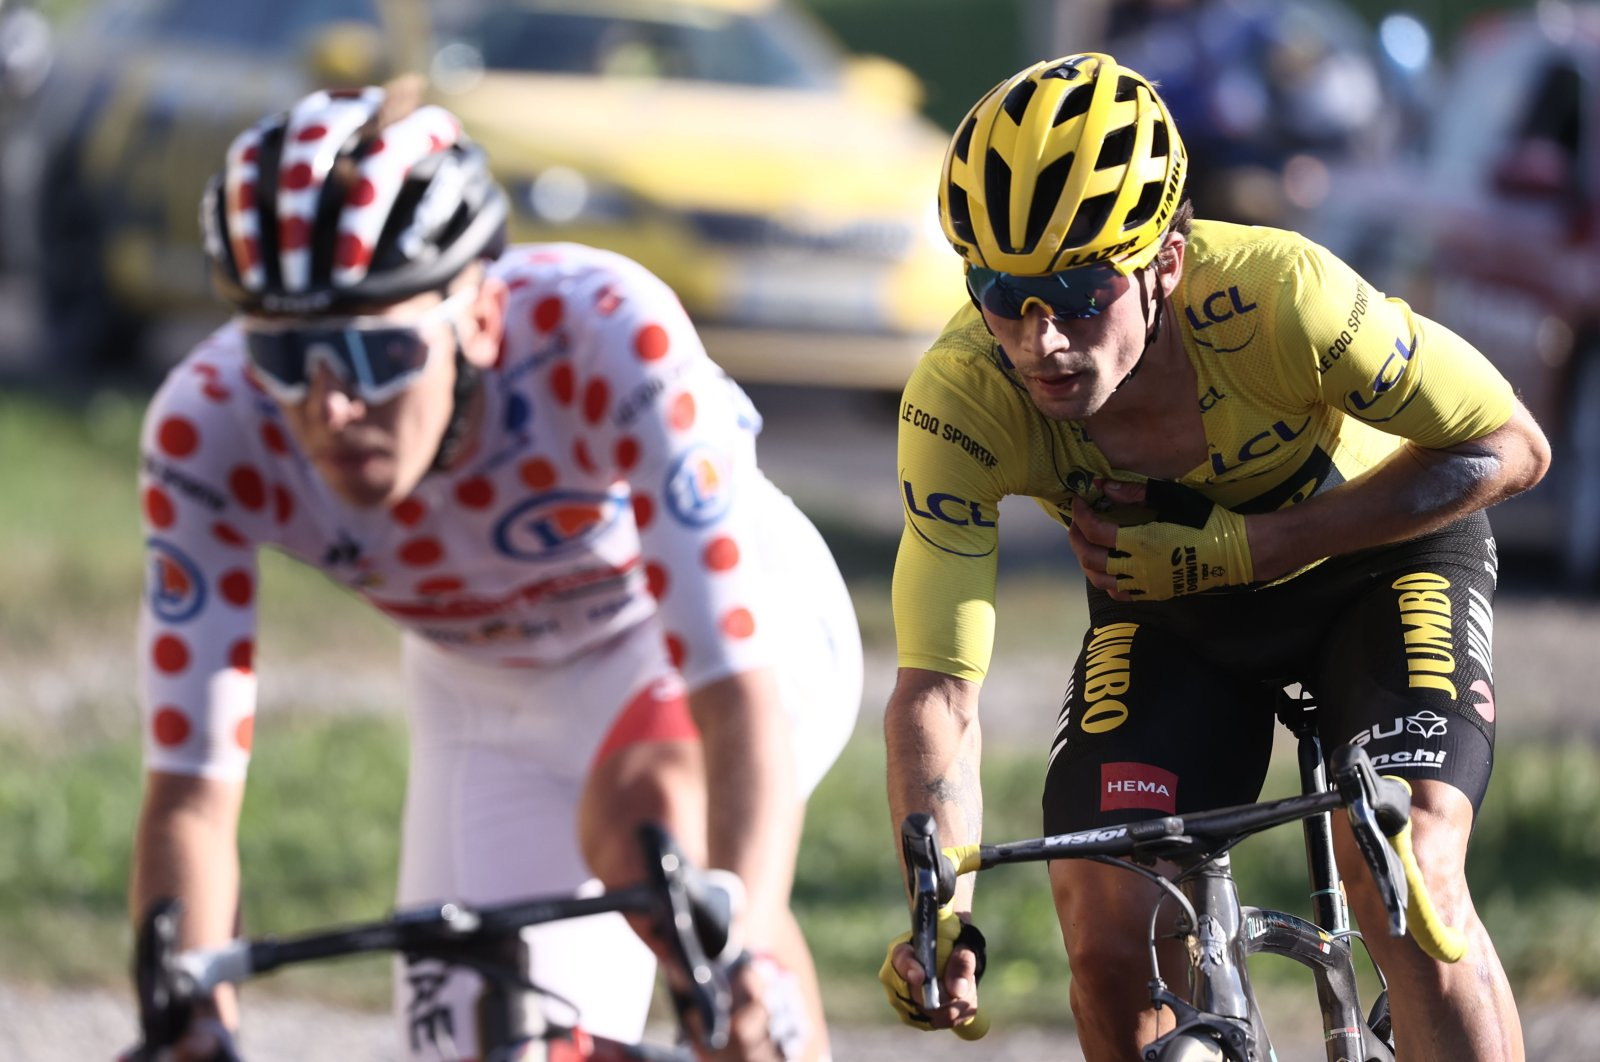 Team UAE rider Tadej Pogacar (L) and Team Jumbo rider Primoz Roglic ride on the Glieres plateau during the 18th stage of the Tour de France cycling race, near Roche sur Foron, France, Sept. 17, 2020. (AFP Photo)